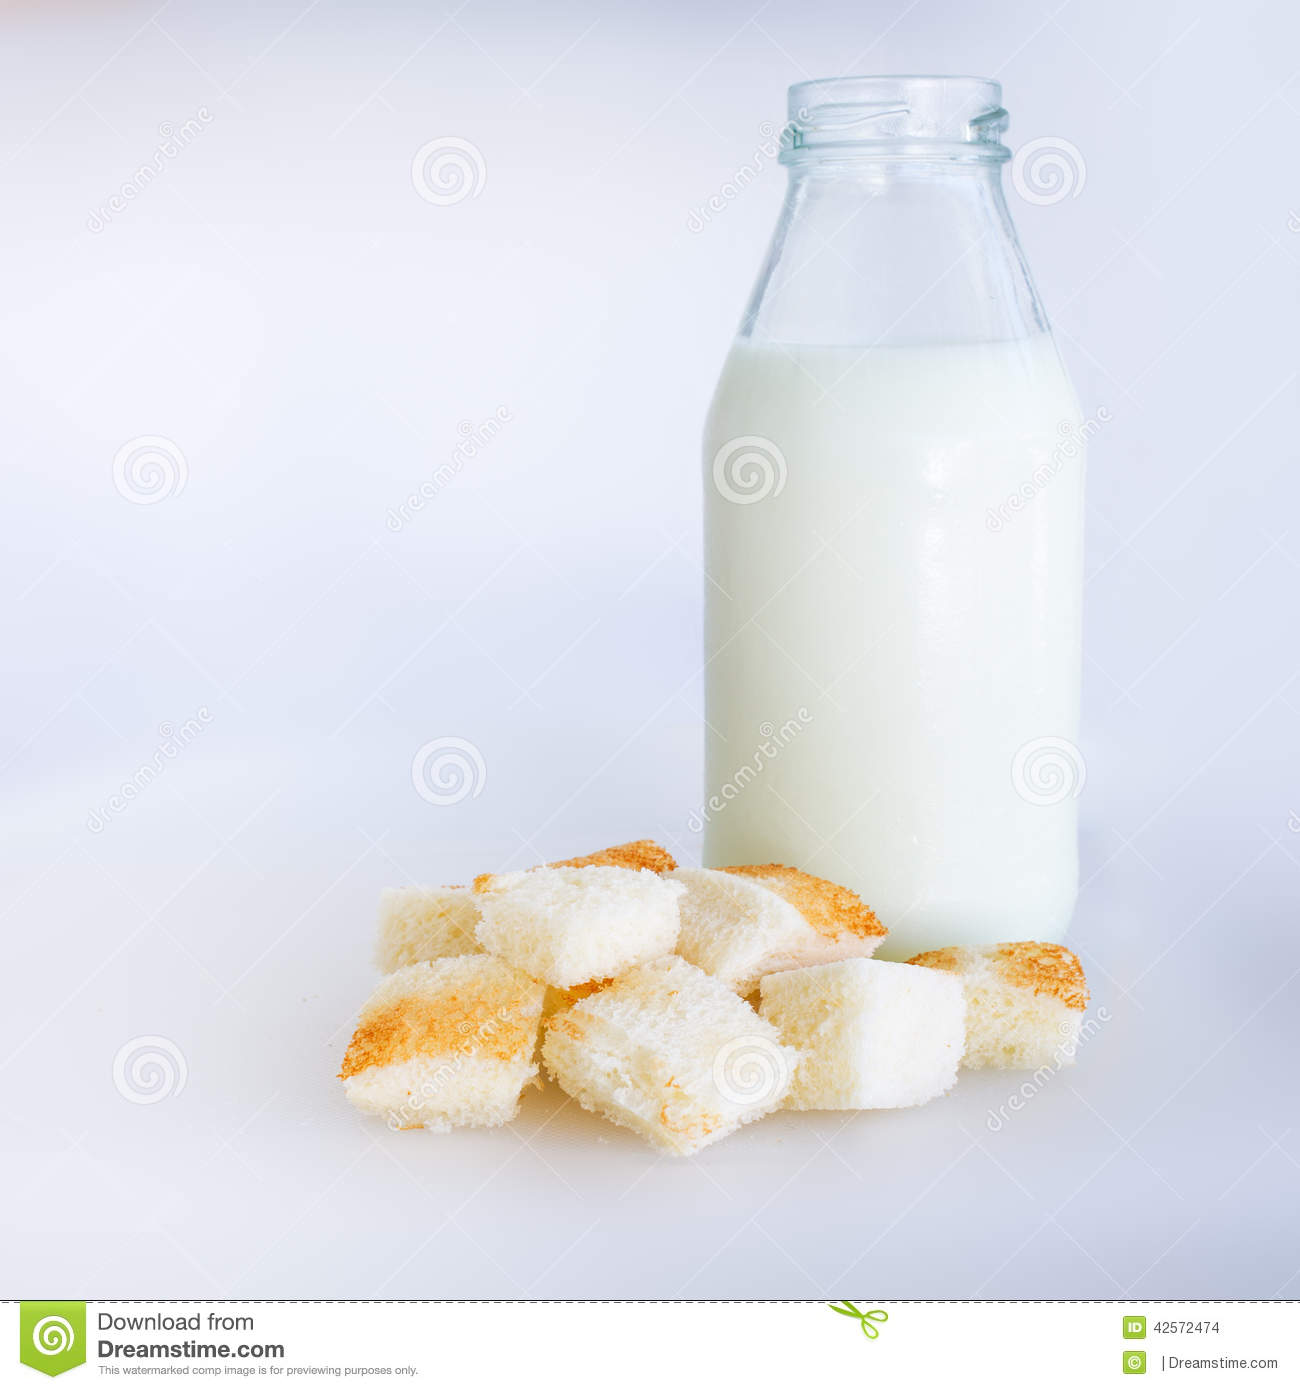 Bread and milk bottle